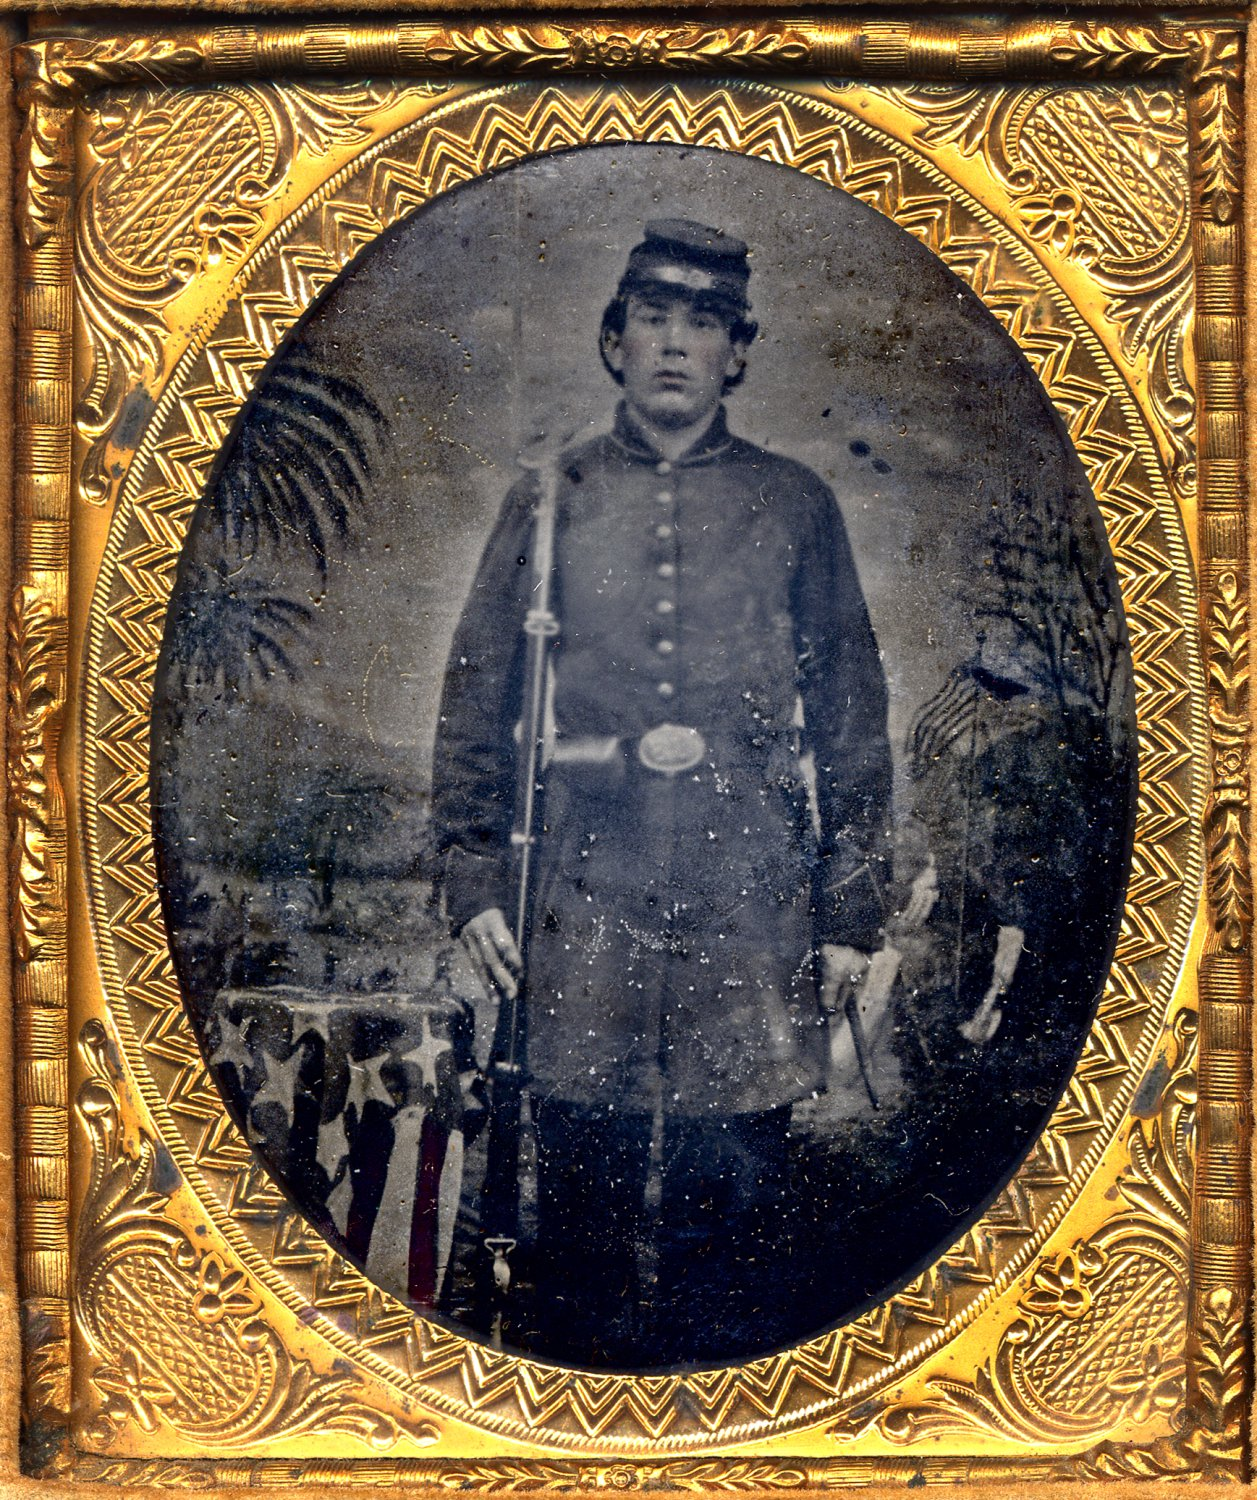 - Civil War soldier, probably Union, judging by the flag, from my private collection of daguerreotypes/tintypes. - Tony Karp, design, art, photography, techno-impressionist, techno-impressionism, aerial photography , drone , drones , dji , mavic pro , video , 3D printing - Books -